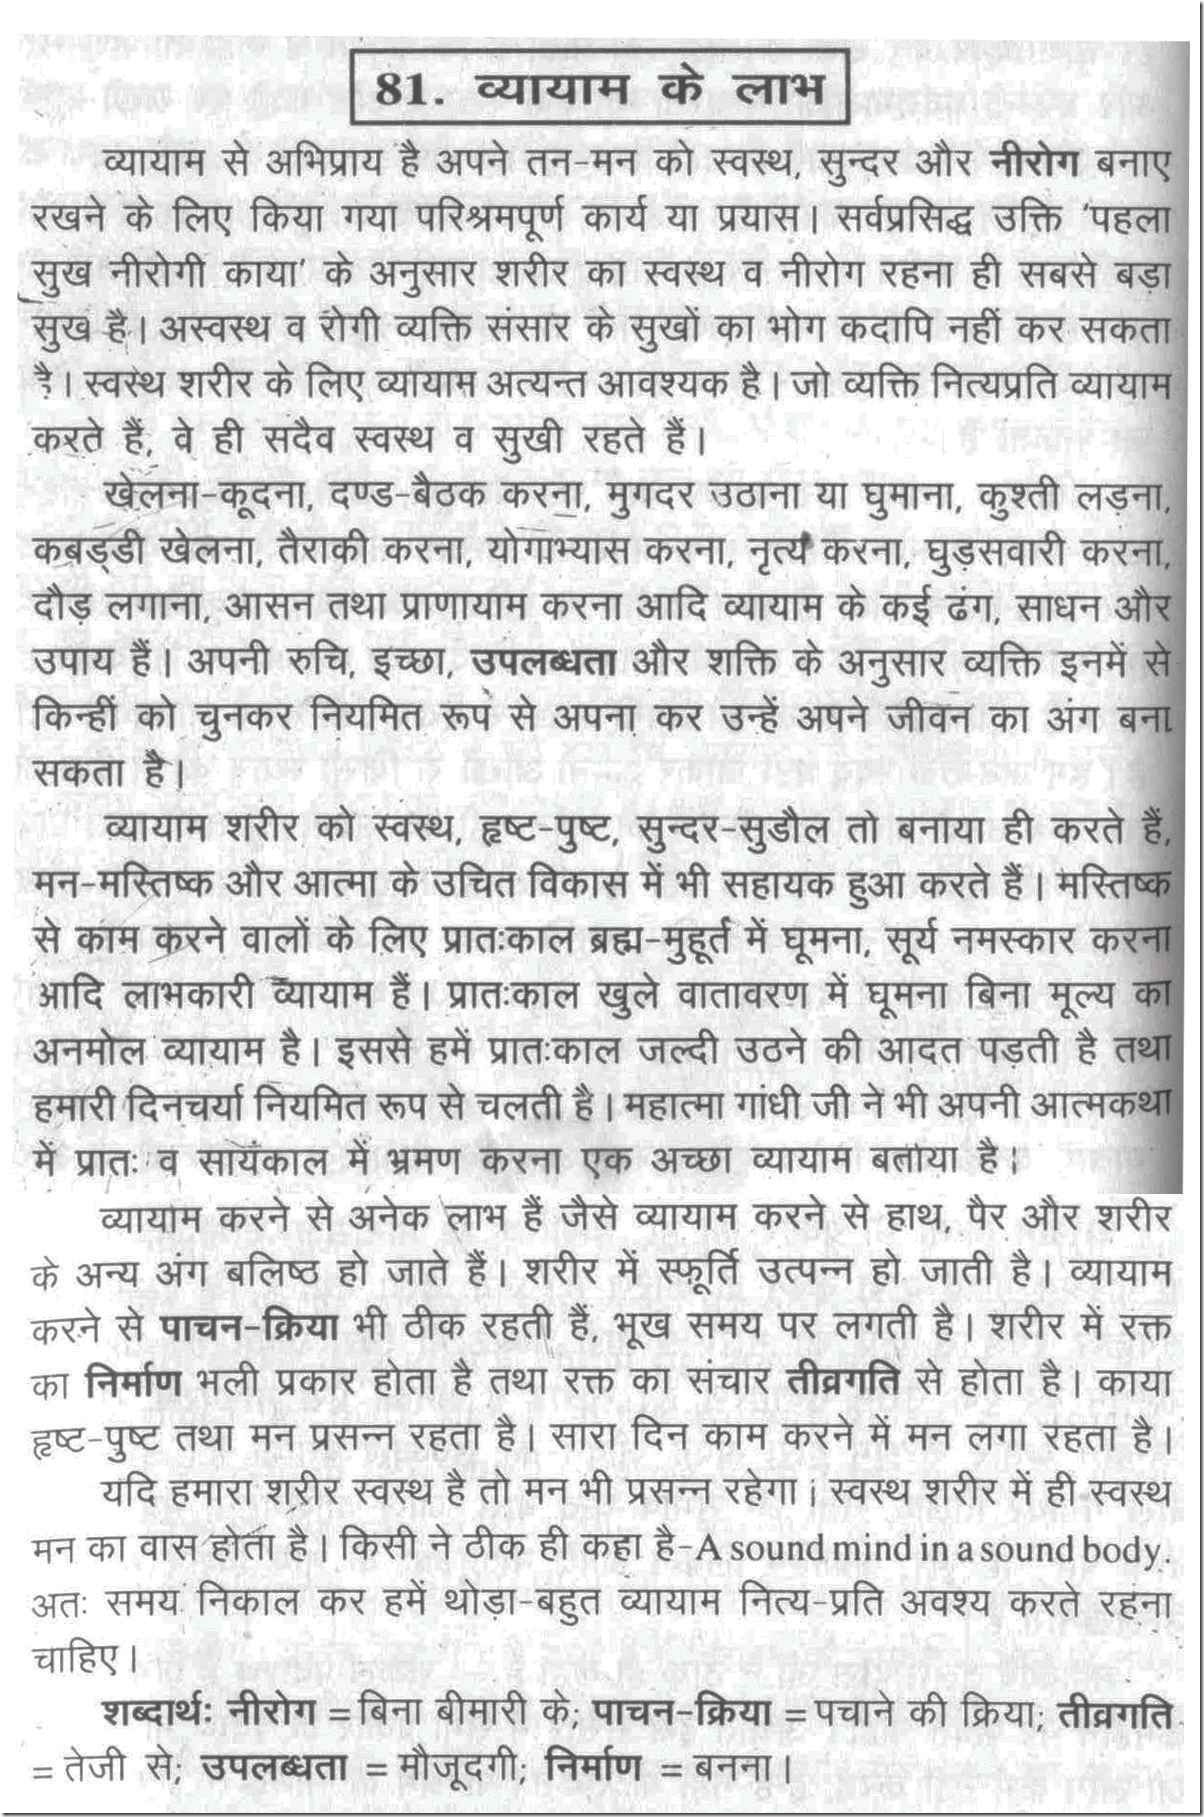 011 2563478896 Essay On Health And Fitness Through Food Good Habits In Hindi Exceptional Habit Full